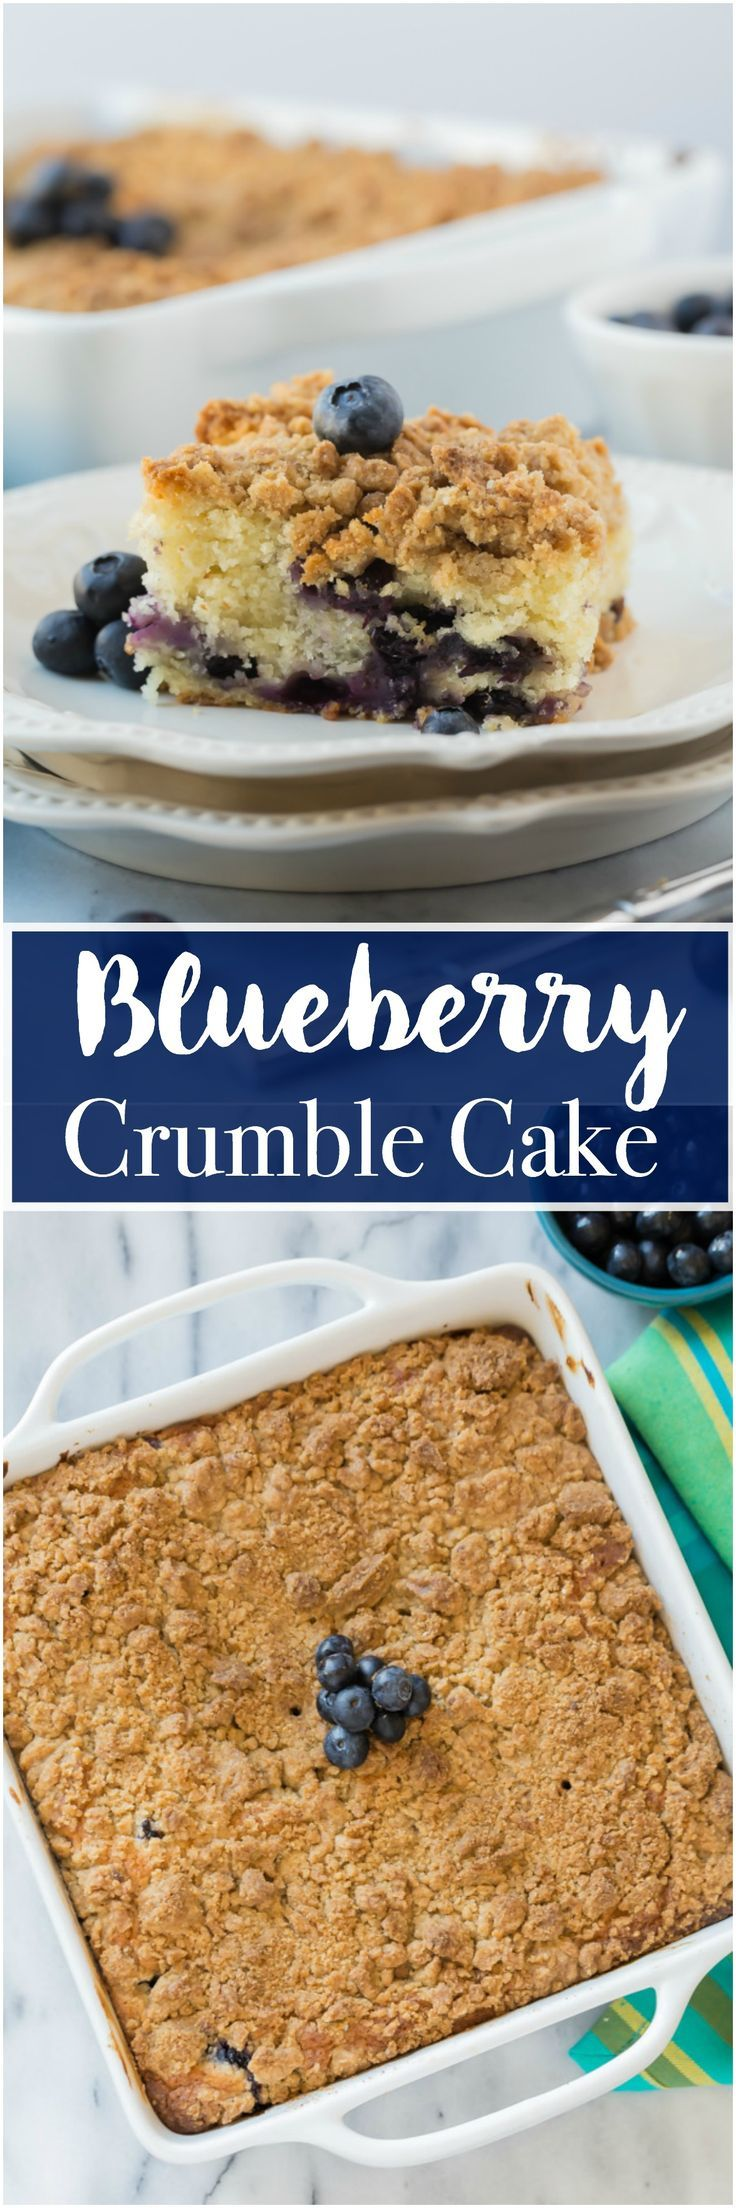 Blueberry Crumble Cake is such a moist, crumbly and a delicious cake! You'll fall head over heels for this delicious cake! Plus there's a video to show you how simple this cake is!